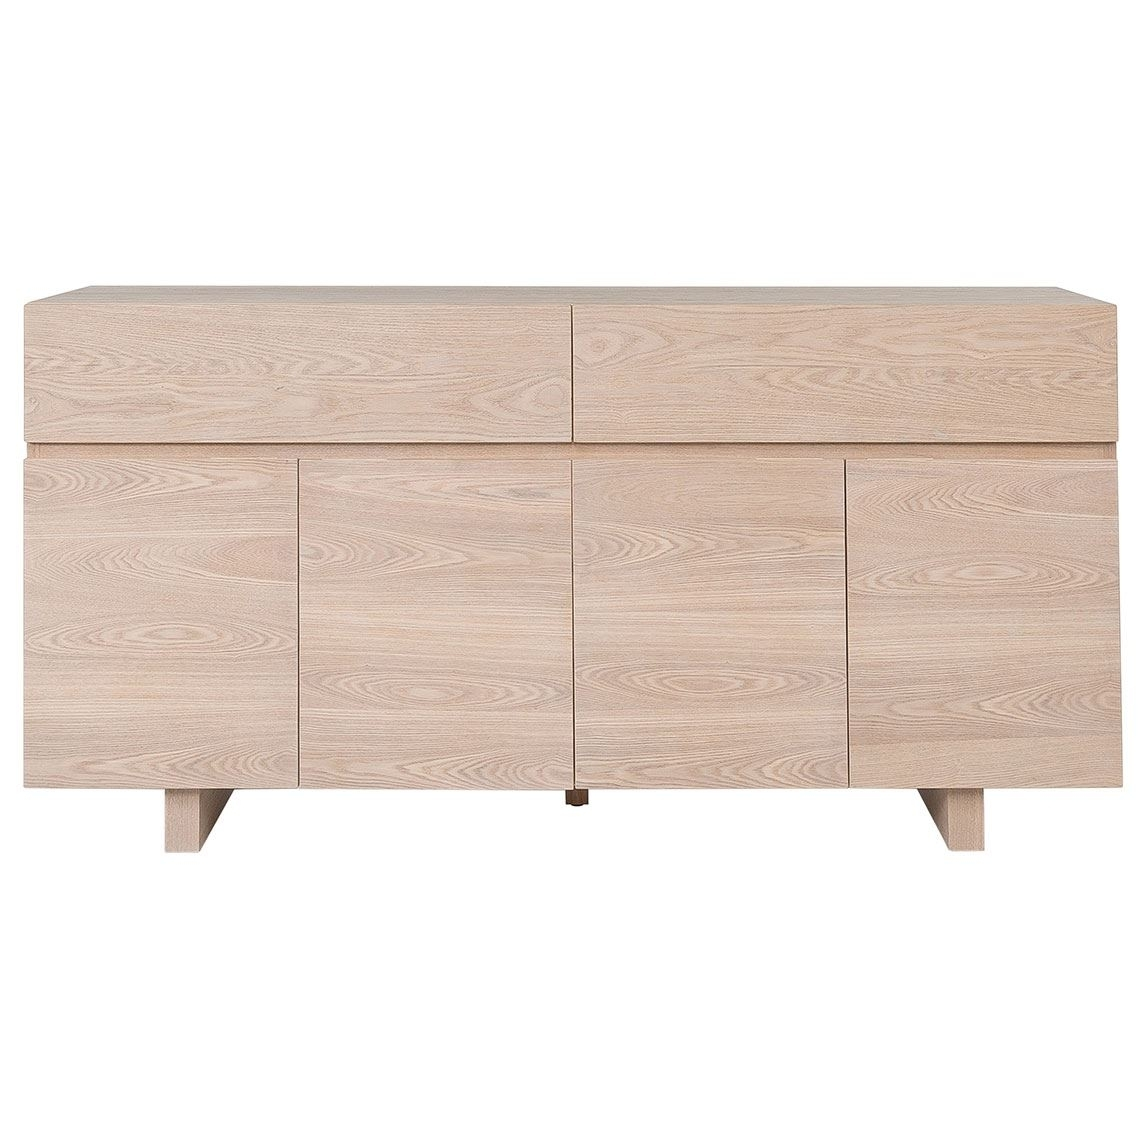 Freedom Furniture And Homewares for Aged Pine 3-Drawer 2-Door Sideboards (Image 11 of 30)